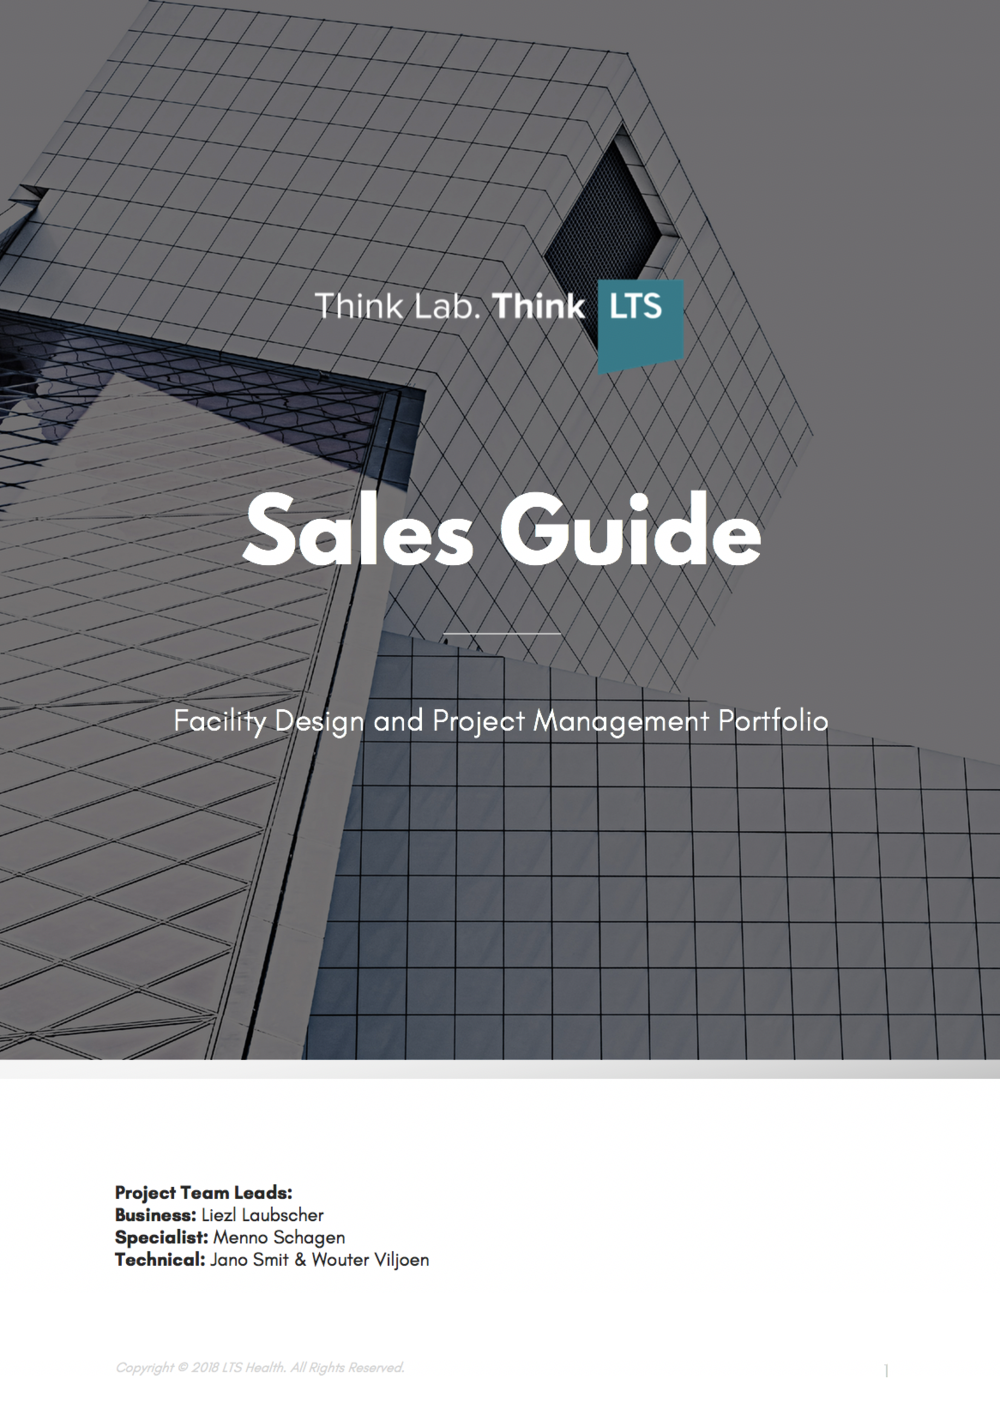 Facility Design - Sales Guide